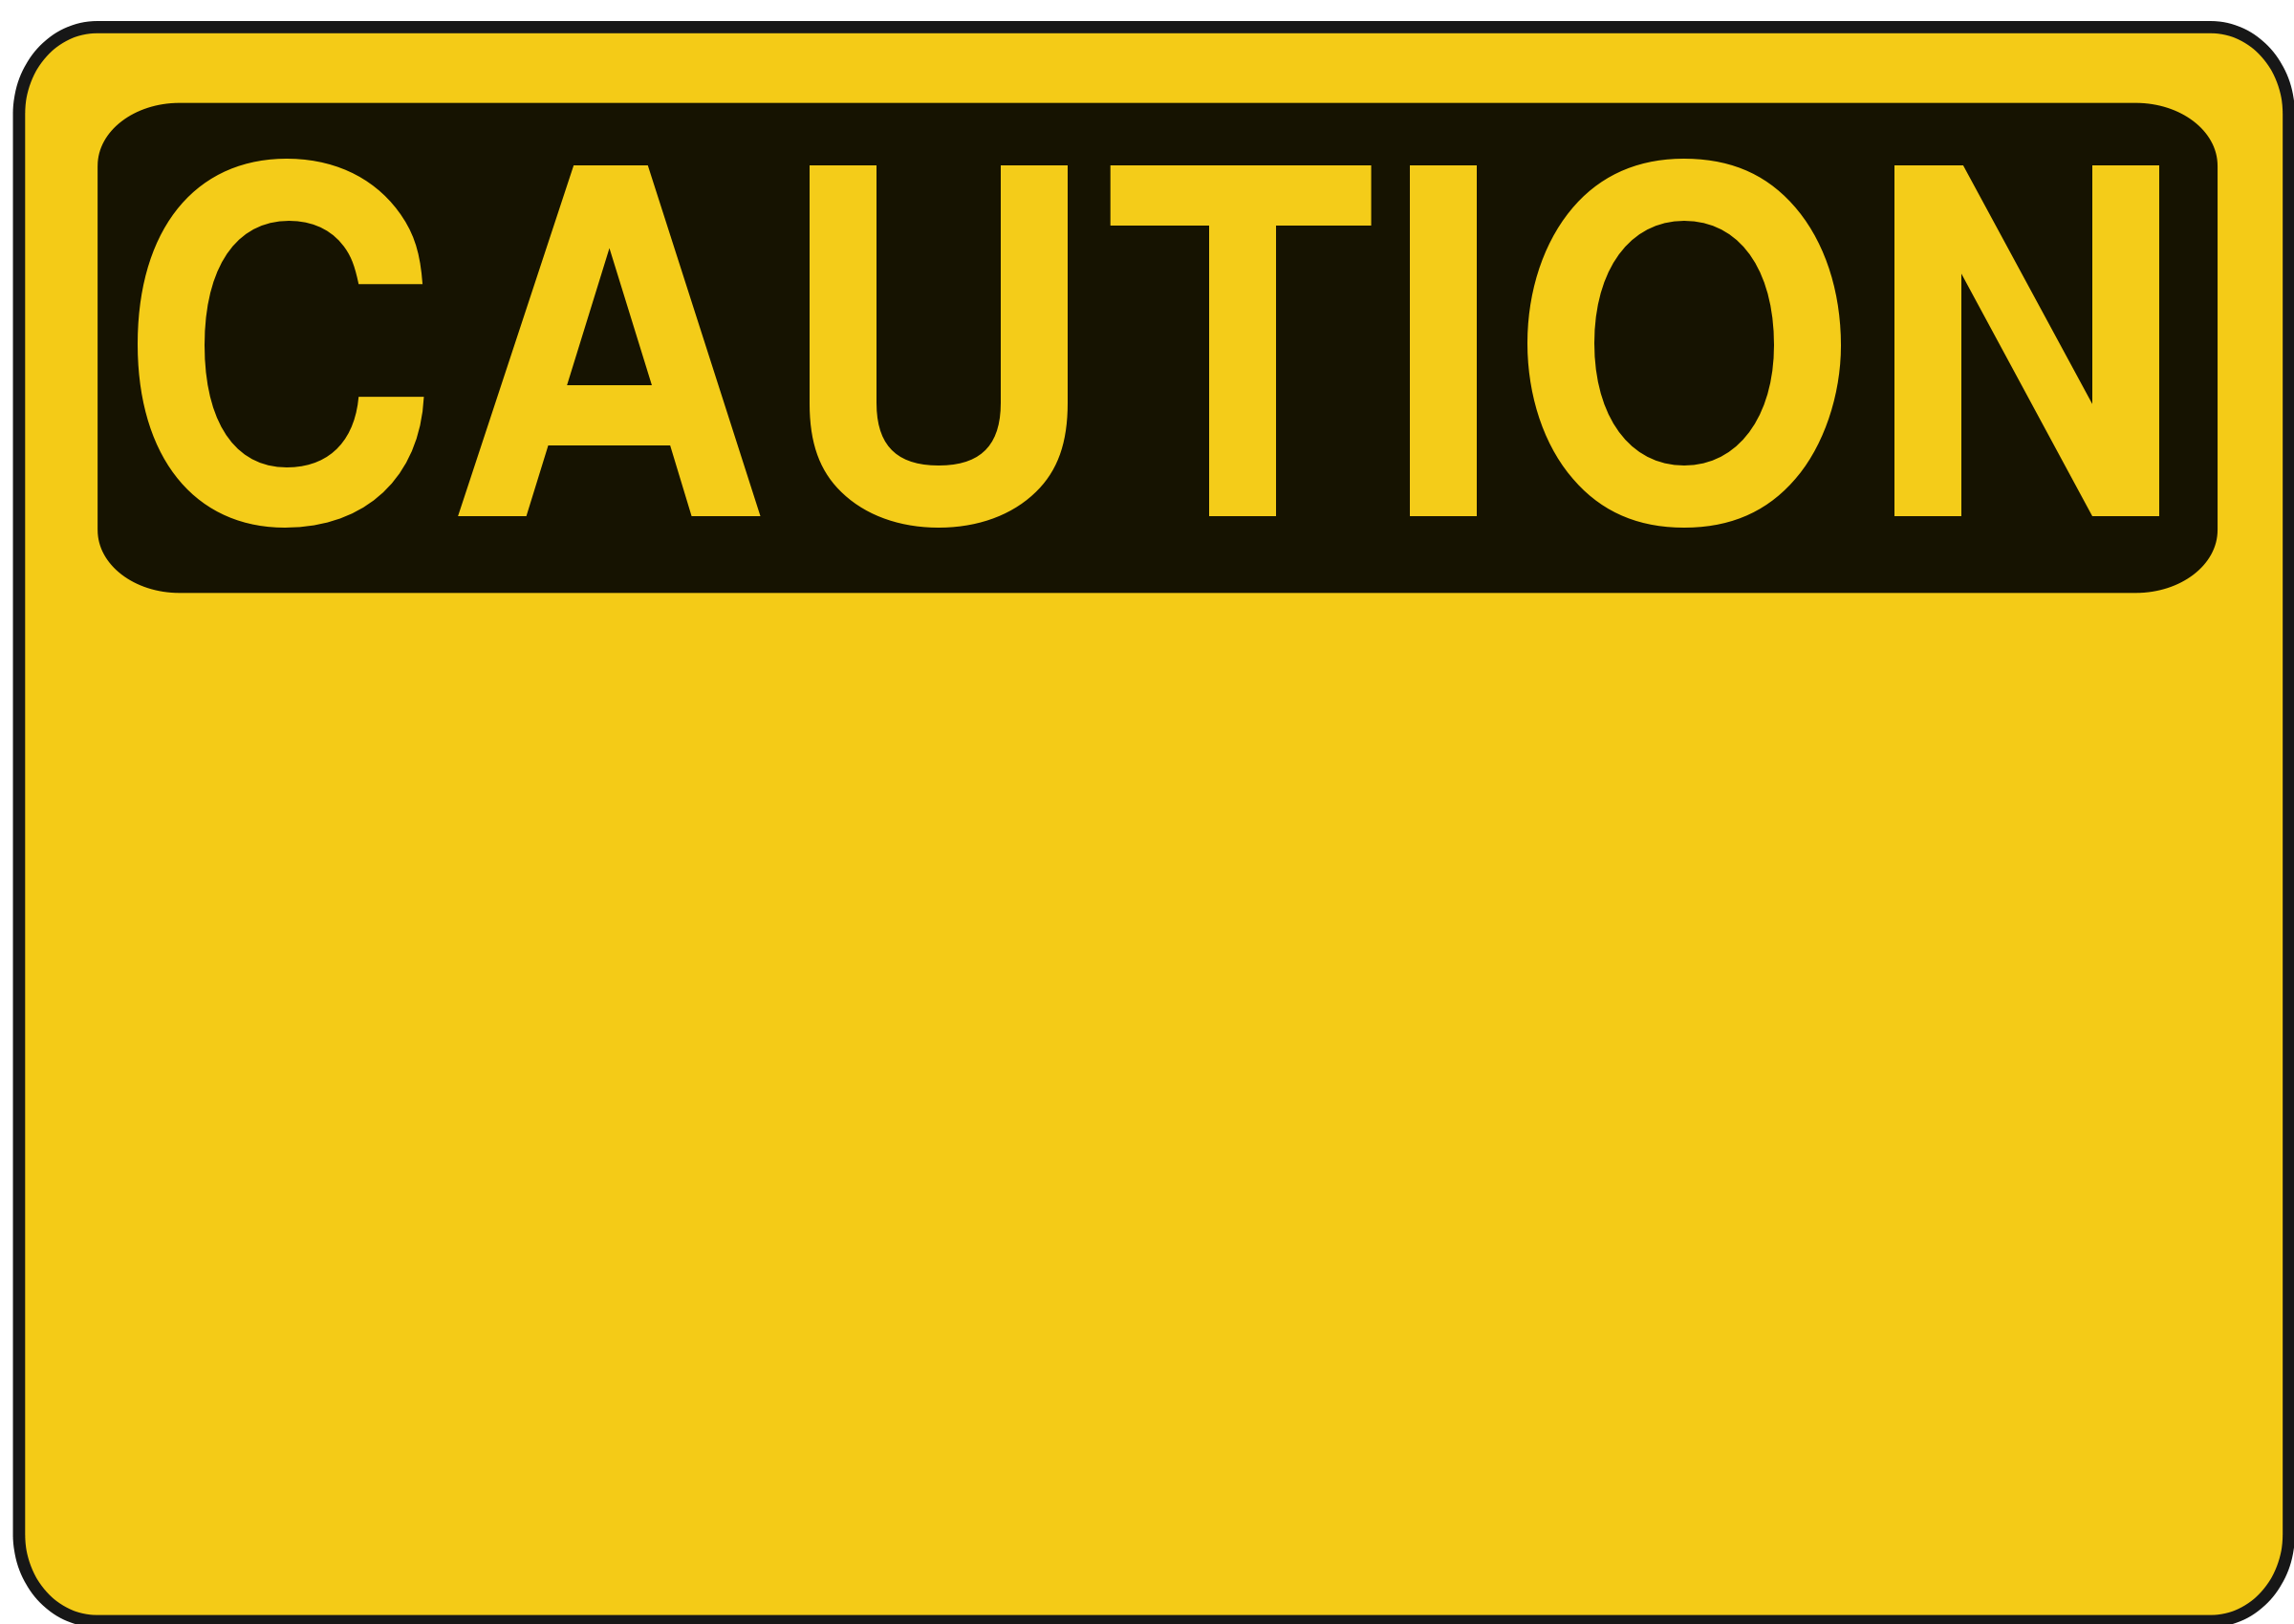 Danger clipart caution tape. Warning sign clip art